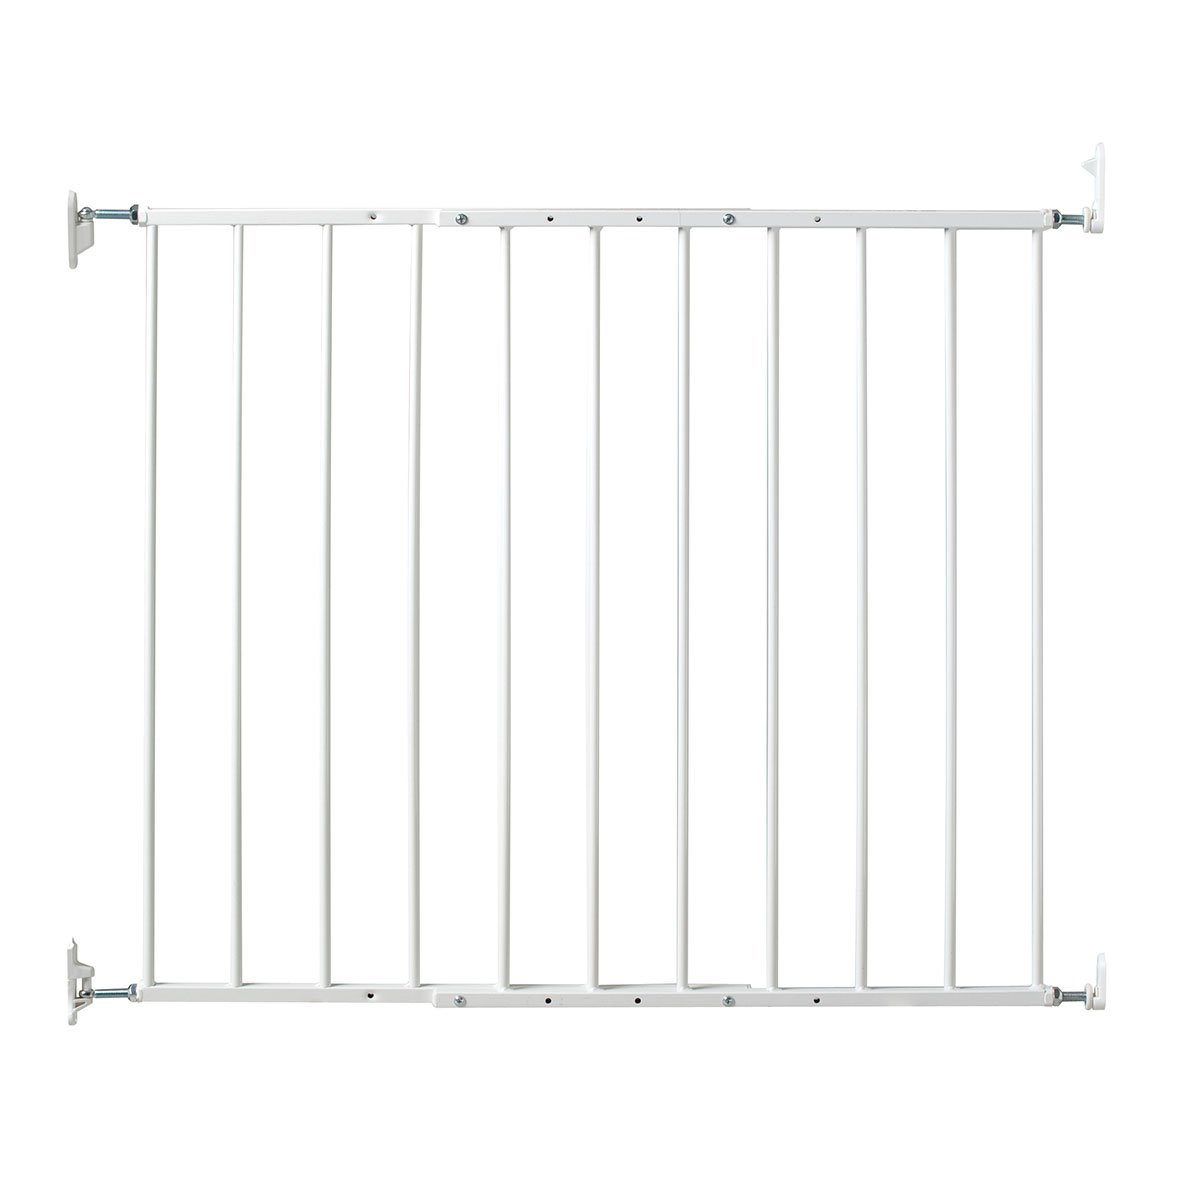 kidco safetway gate top of stairs gate, best safety gates, safety gates, best baby gates for stairs, baby gates for stairs, metal safety gates